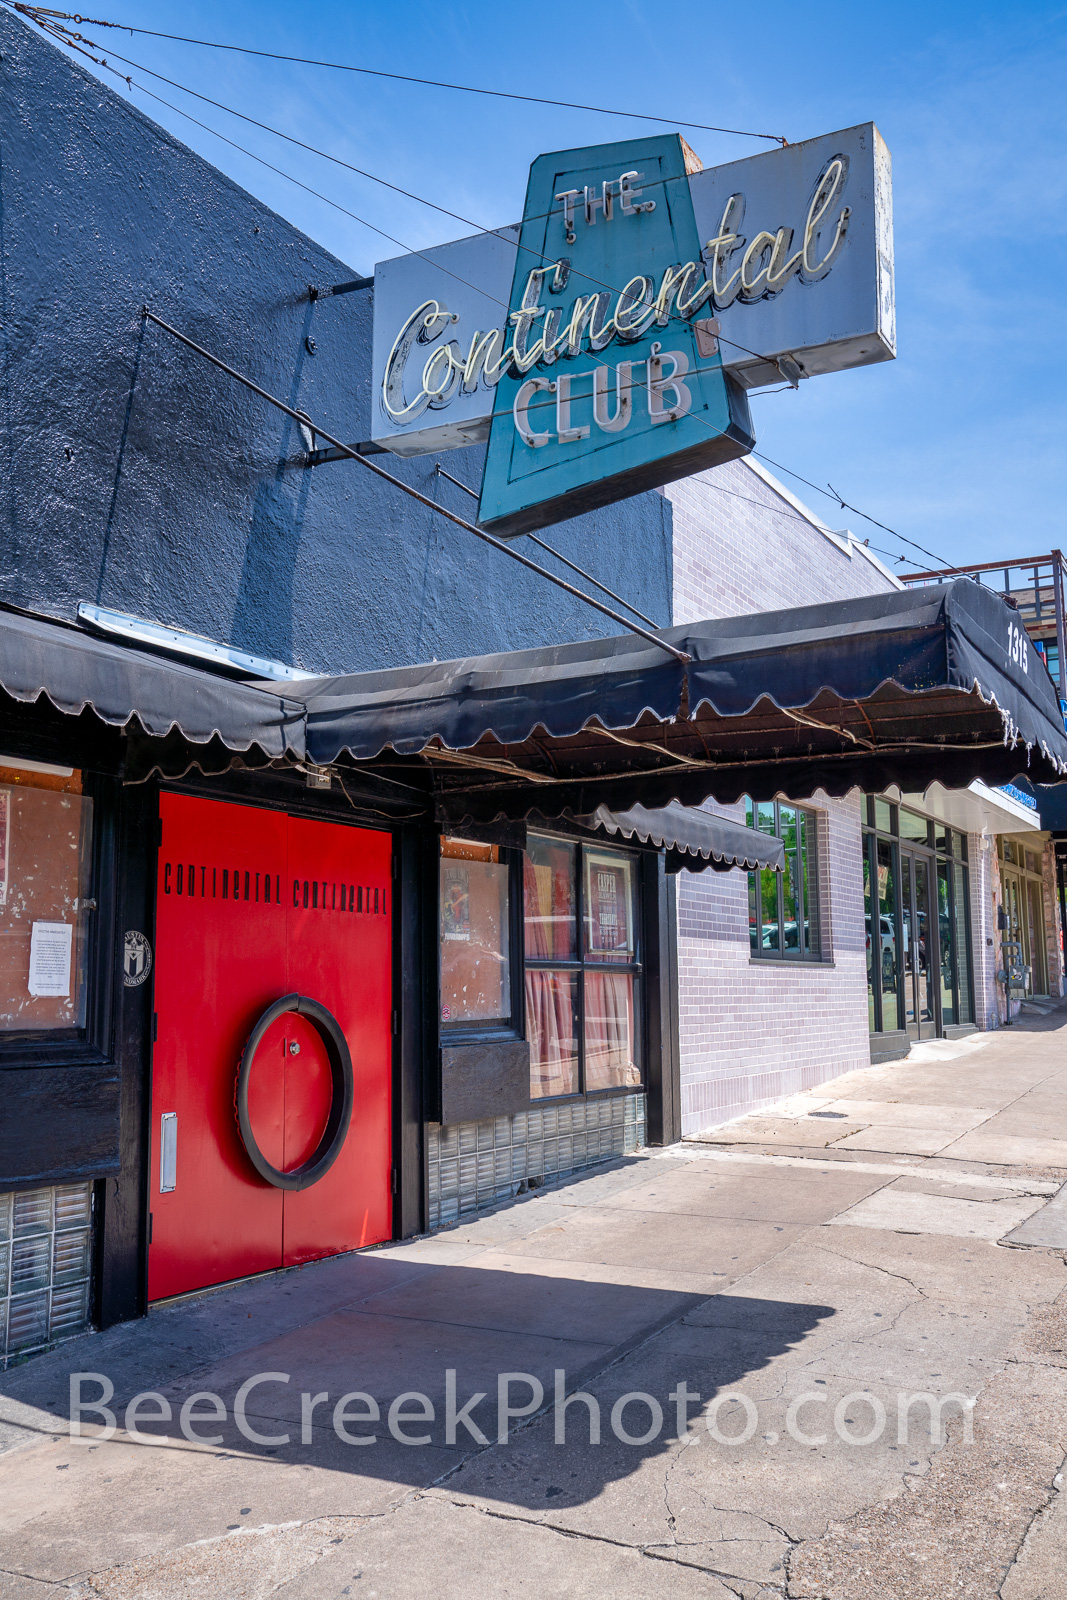 Continental Club Austin ,austin, continental club, austin texas, downtown austin, city of austin, music, night club, iconic, city, downtown, music scene, south congress, live music, SOHO, vertical, no, photo